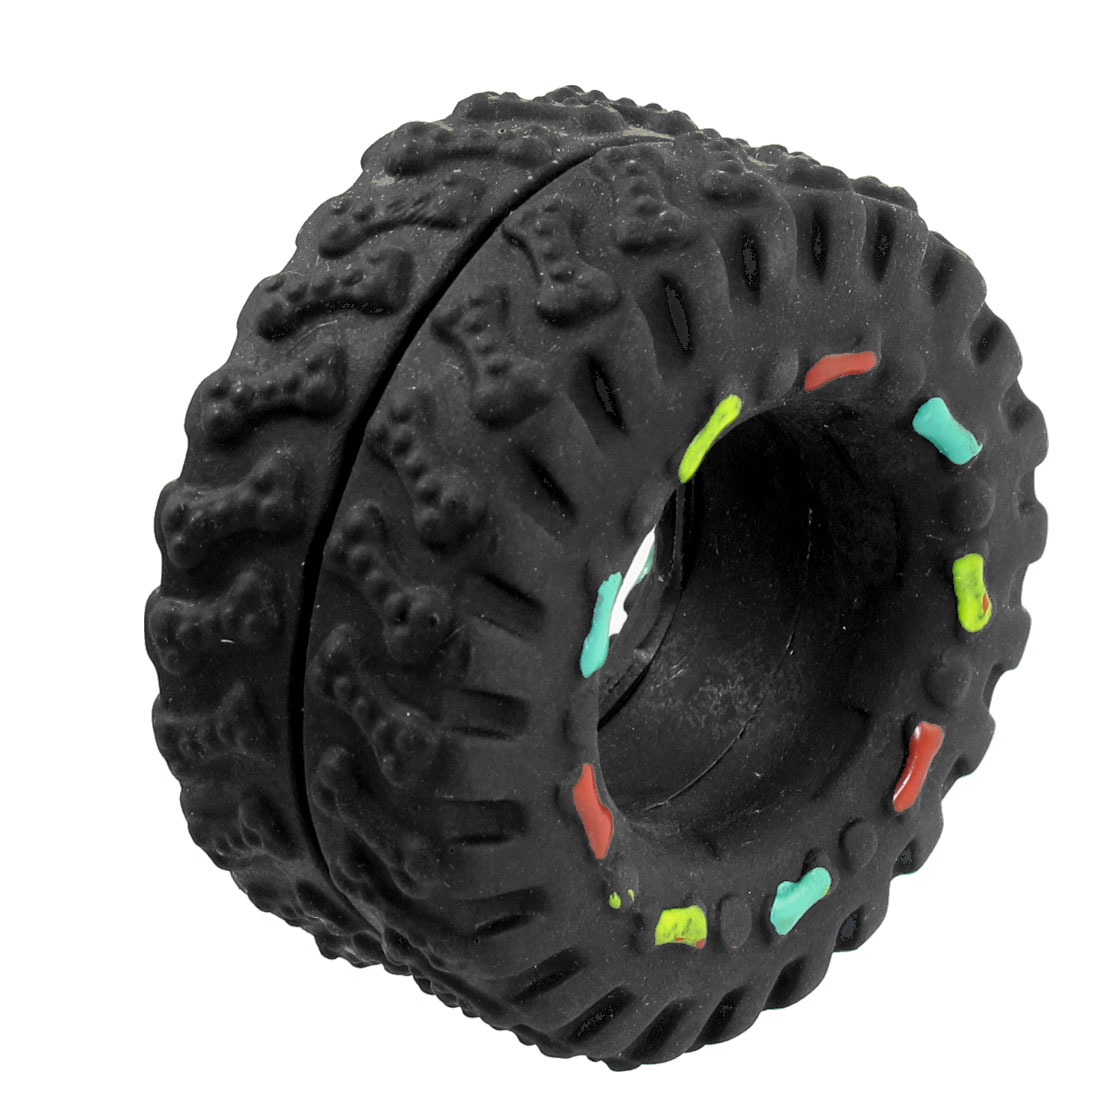 Black Vinyl Rubber Tire Tyre Shaped Bone Pattern Squeaky Dog Cat Pet Toy